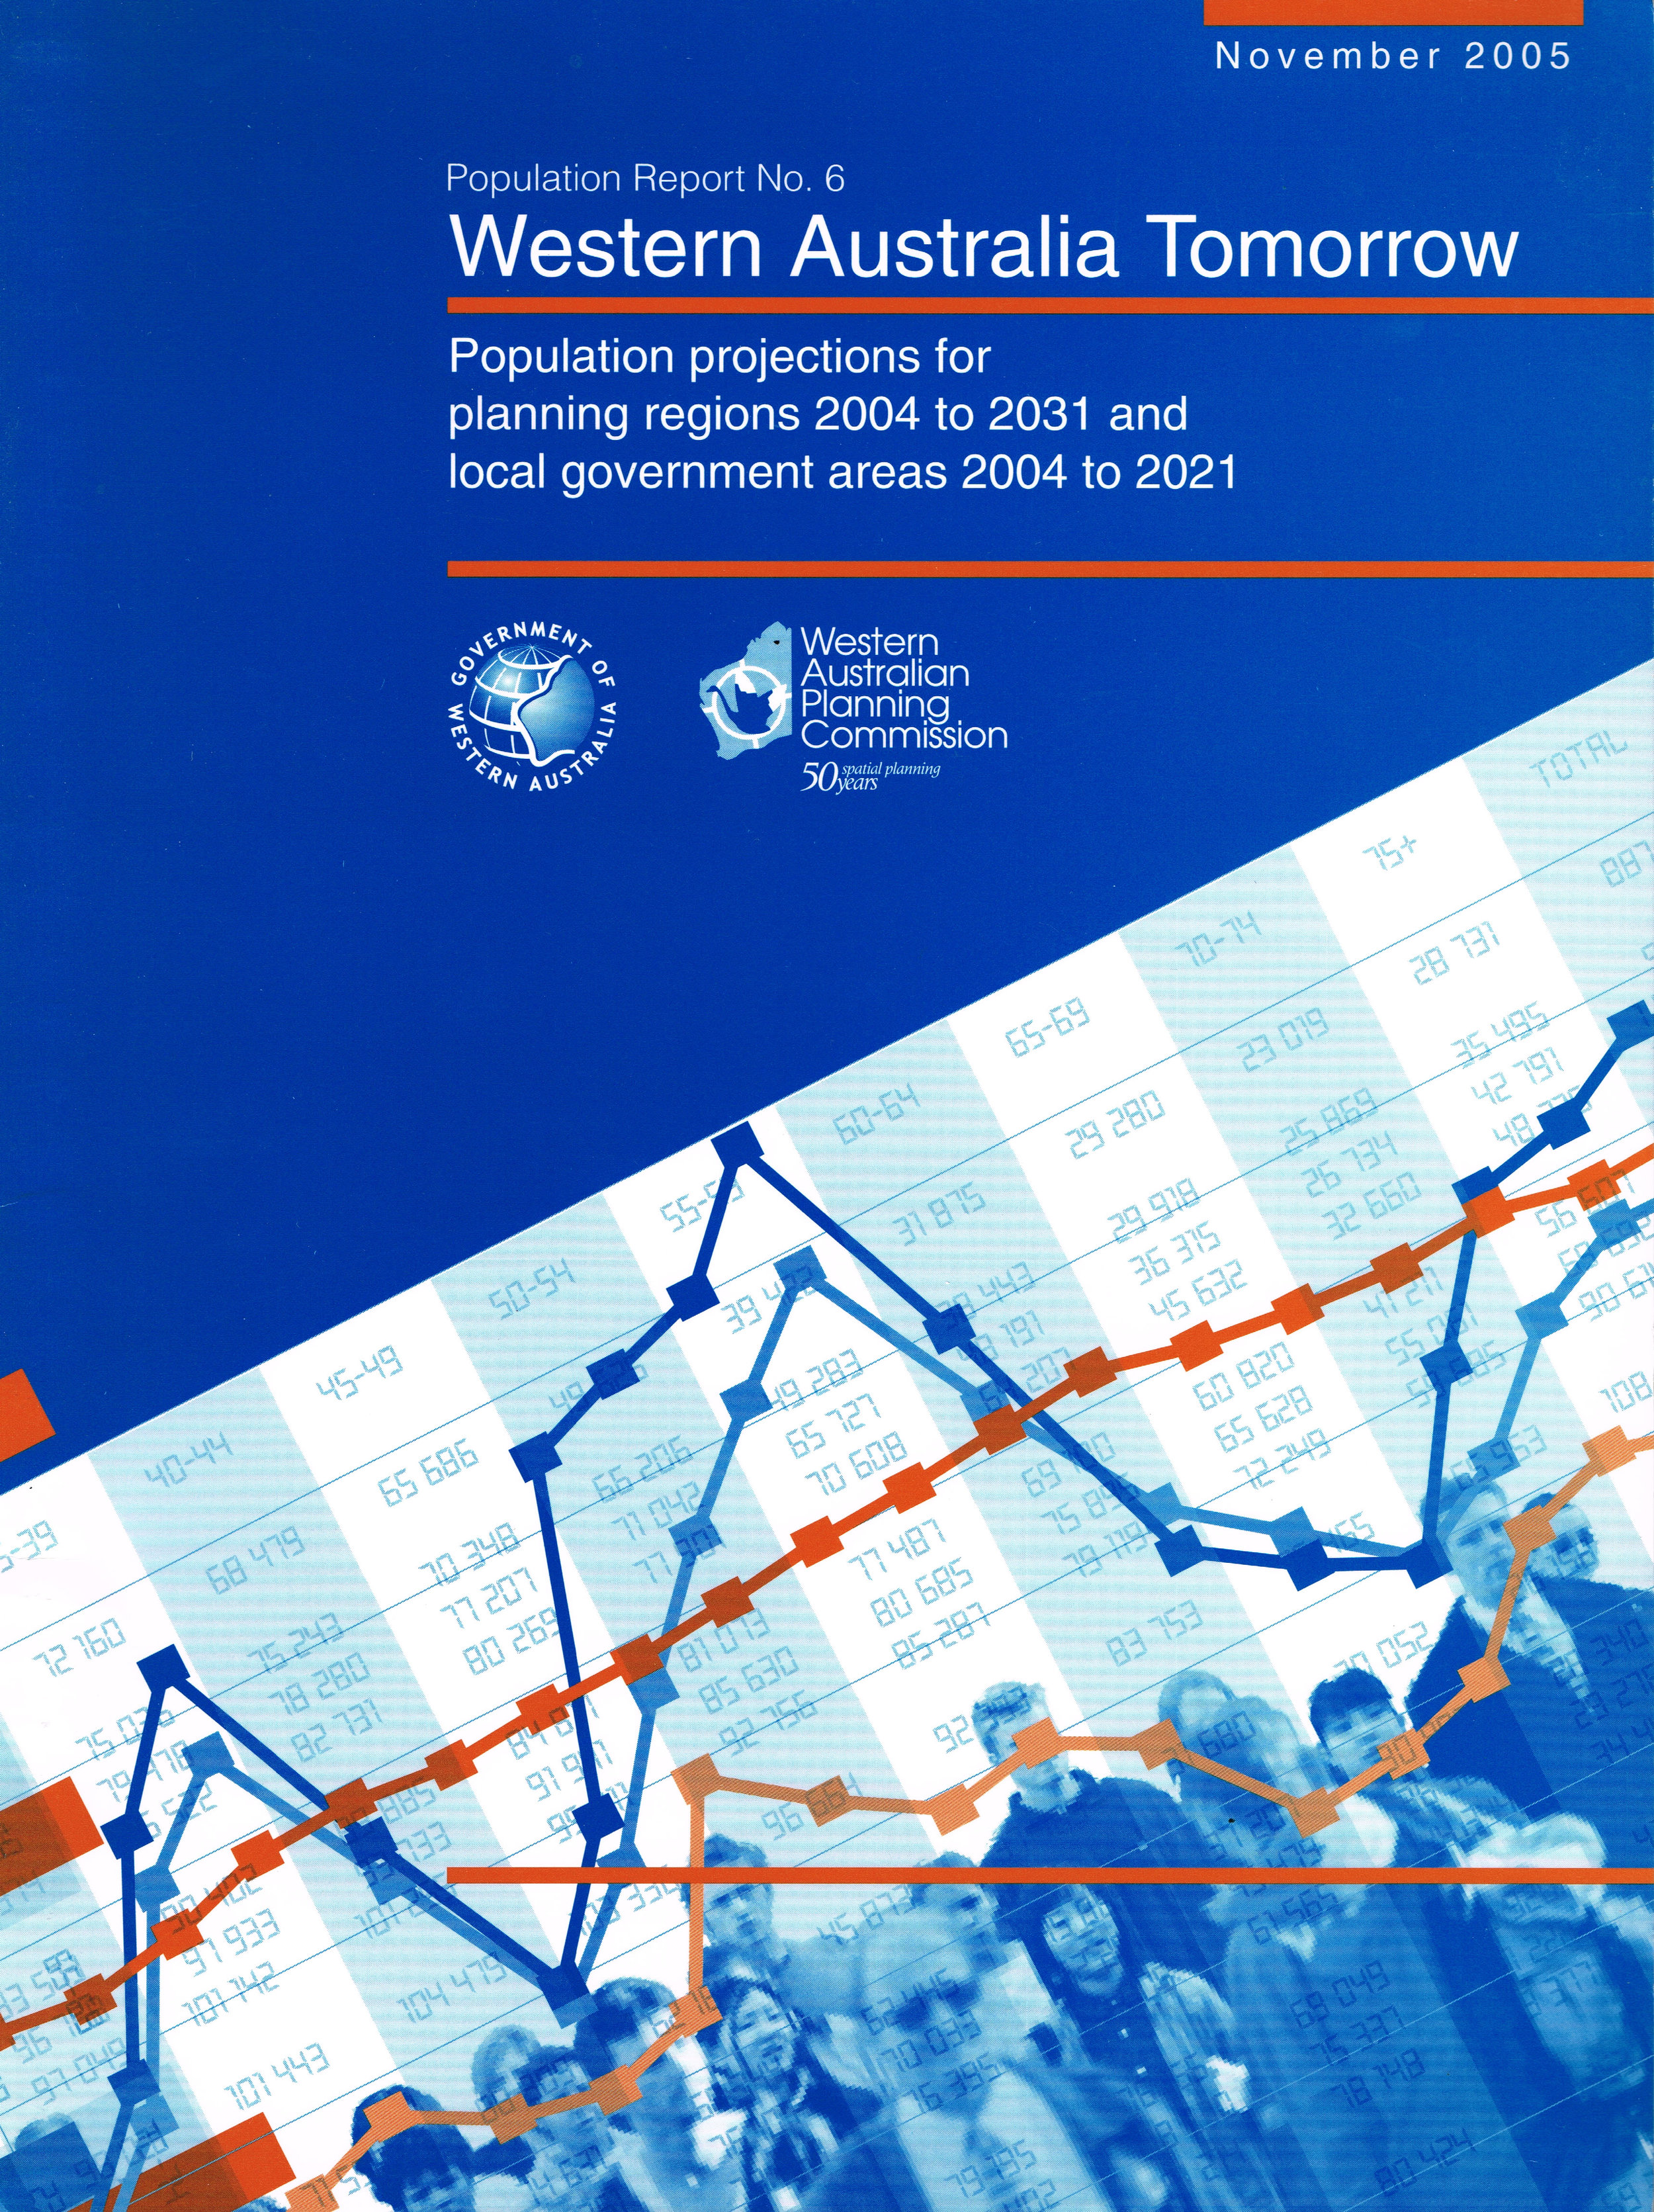 Western Australia tomorrow : population projections for planning regions 2004 to 2031 and local government areas of Western Australia 2004 to 2021.  Western Australian Planning Commission, November 2005